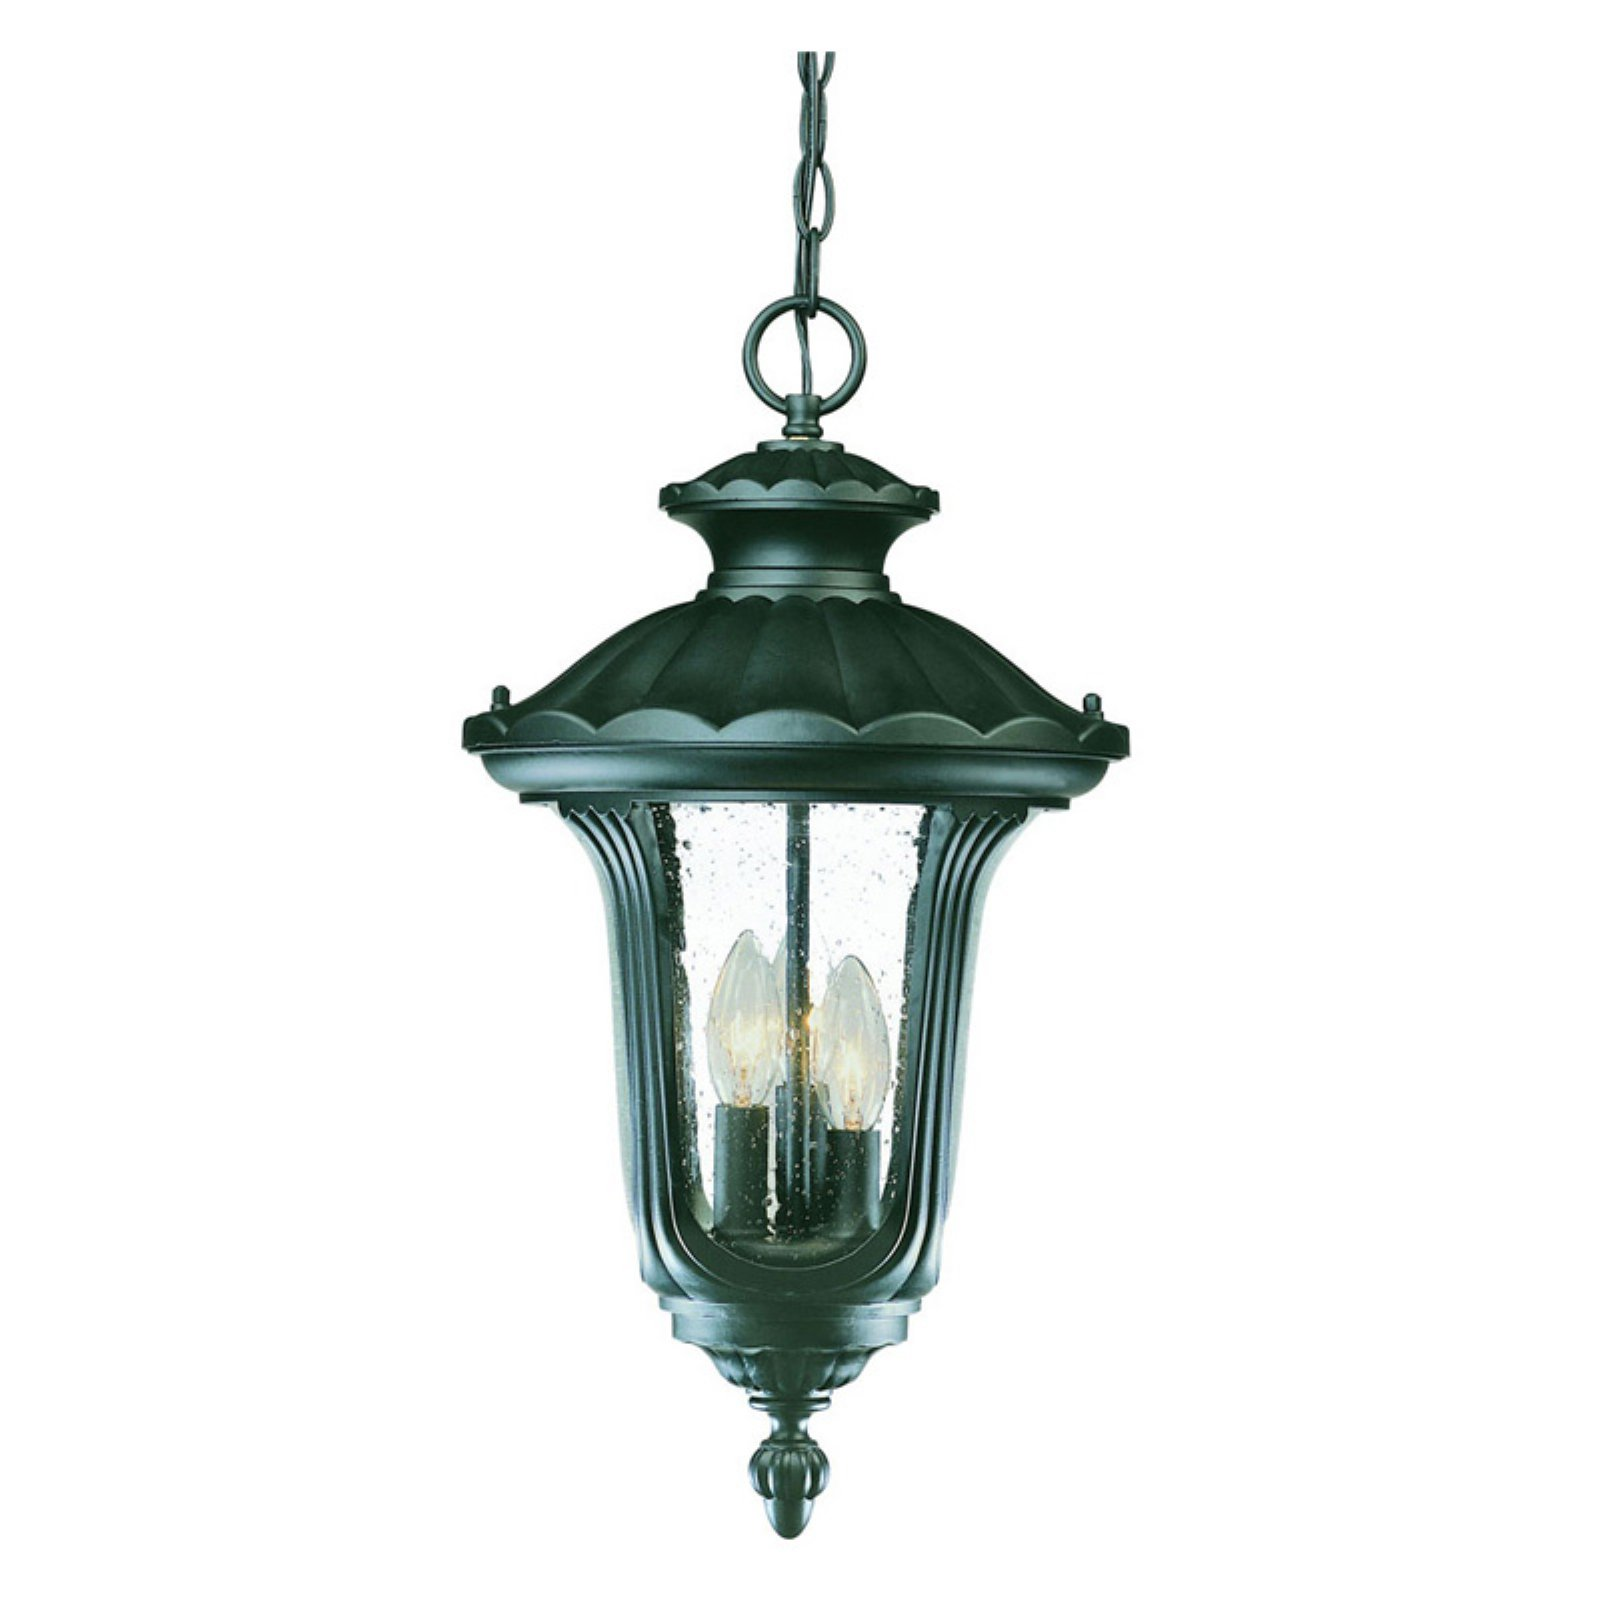 Acclaim Lighting Augusta Outdoor Hanging Lantern Light Fixture by Acclaim Lighting